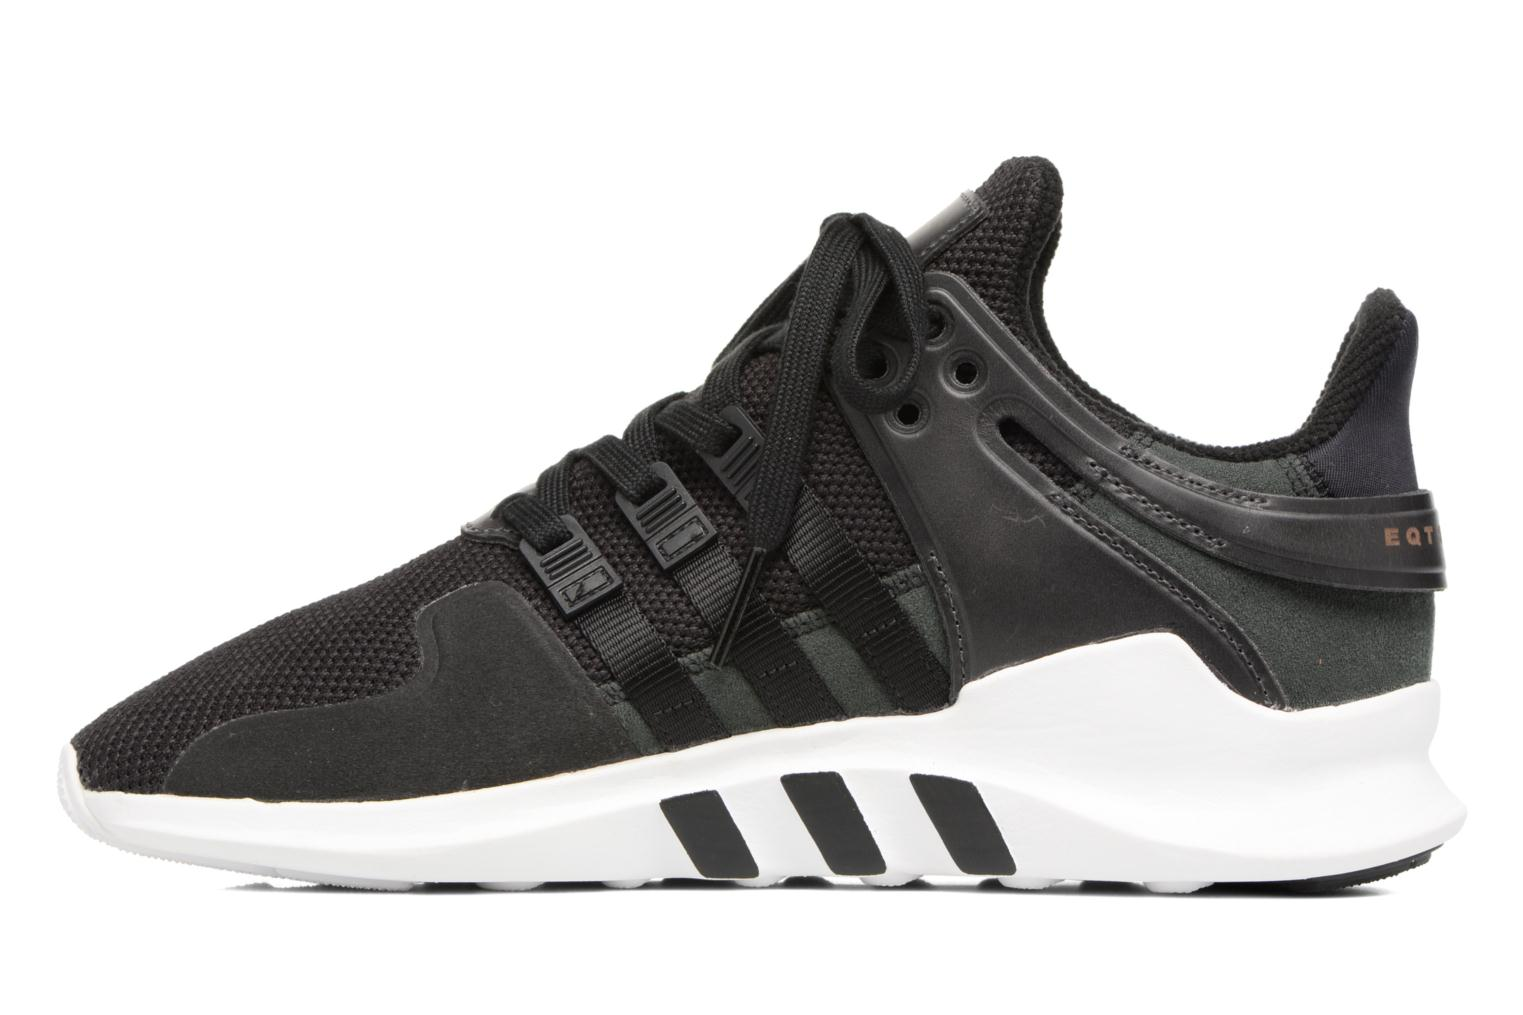 Adidas Originals Eqt Supporto Adv Nero GpJWaUJztd